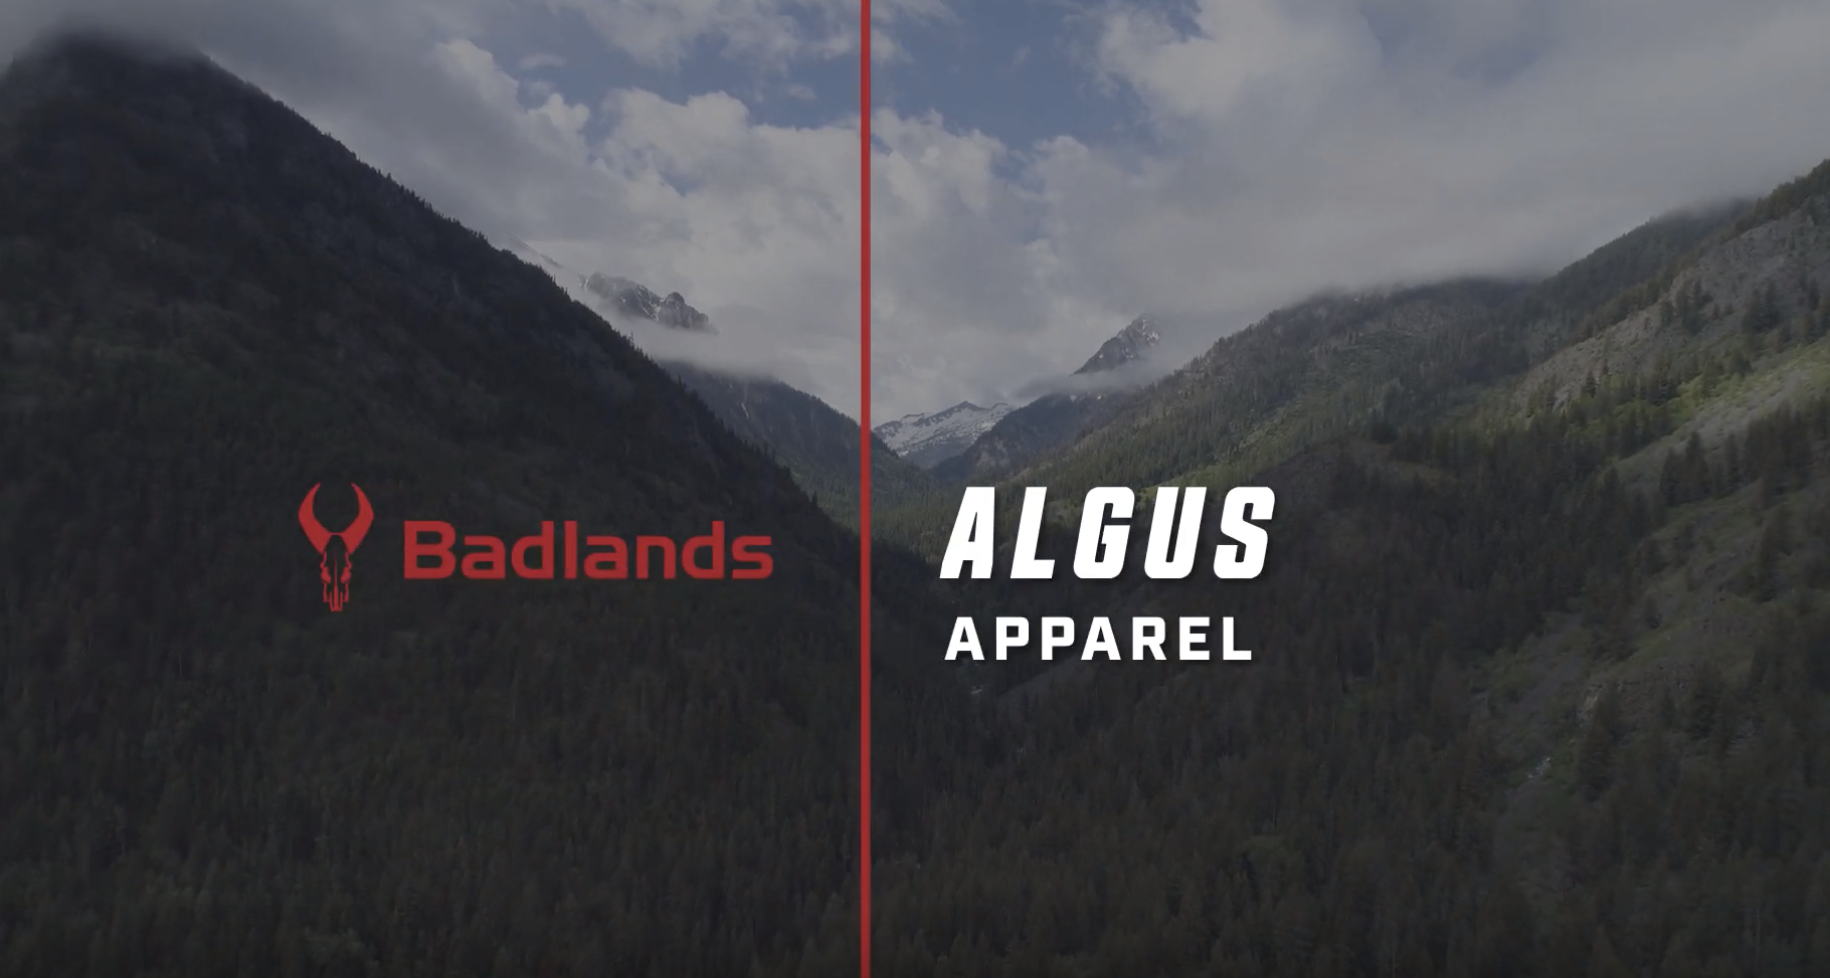 Learn more about the Algus Apparel